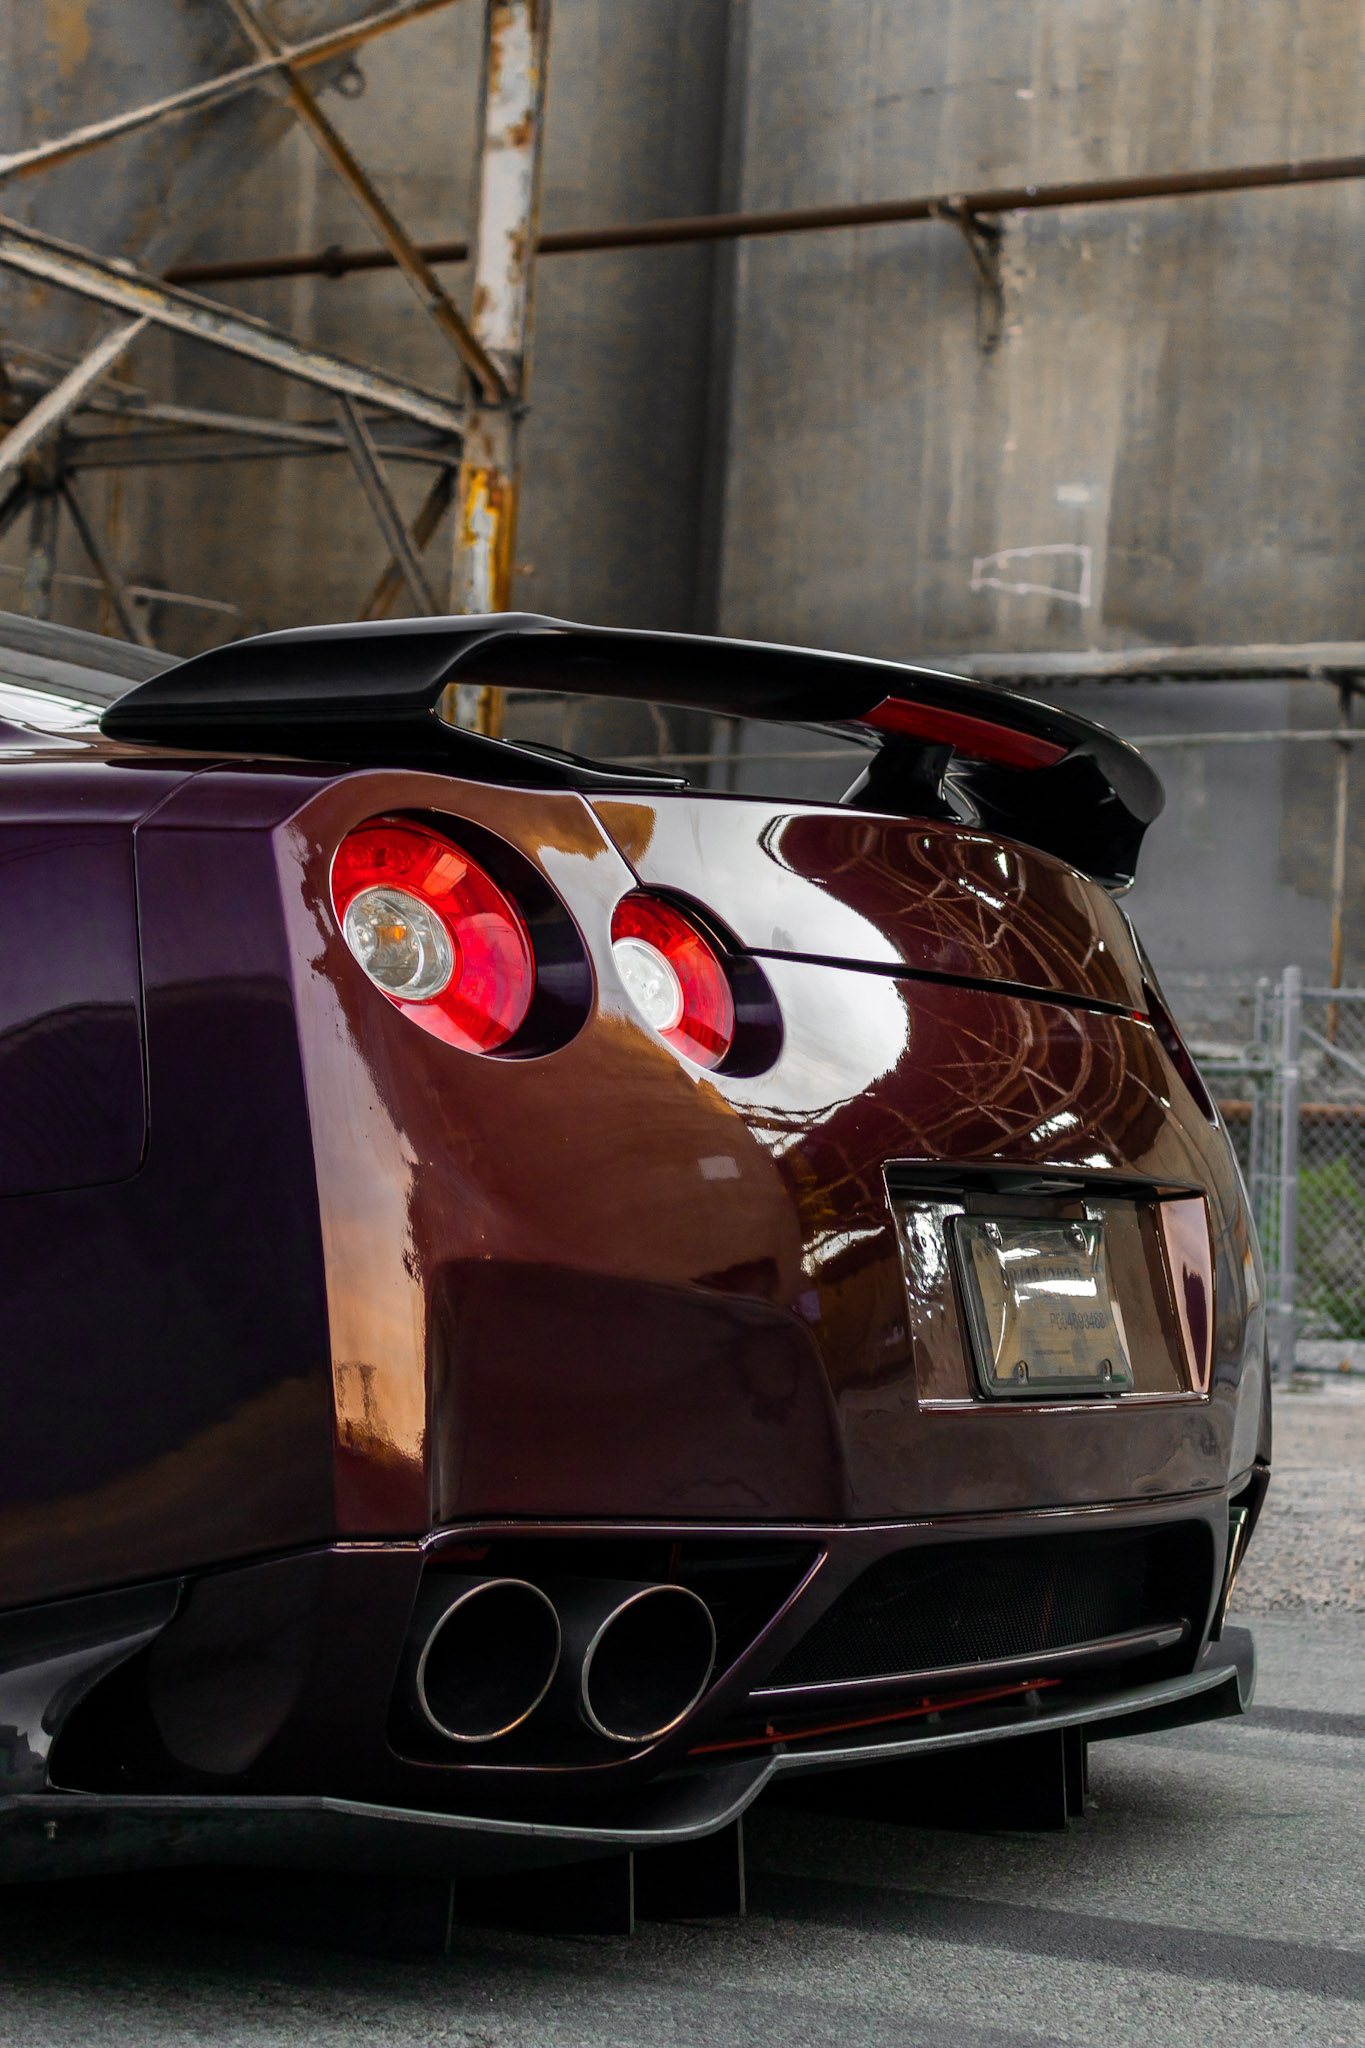 Nissan GTR GT3 Didffuser and canards